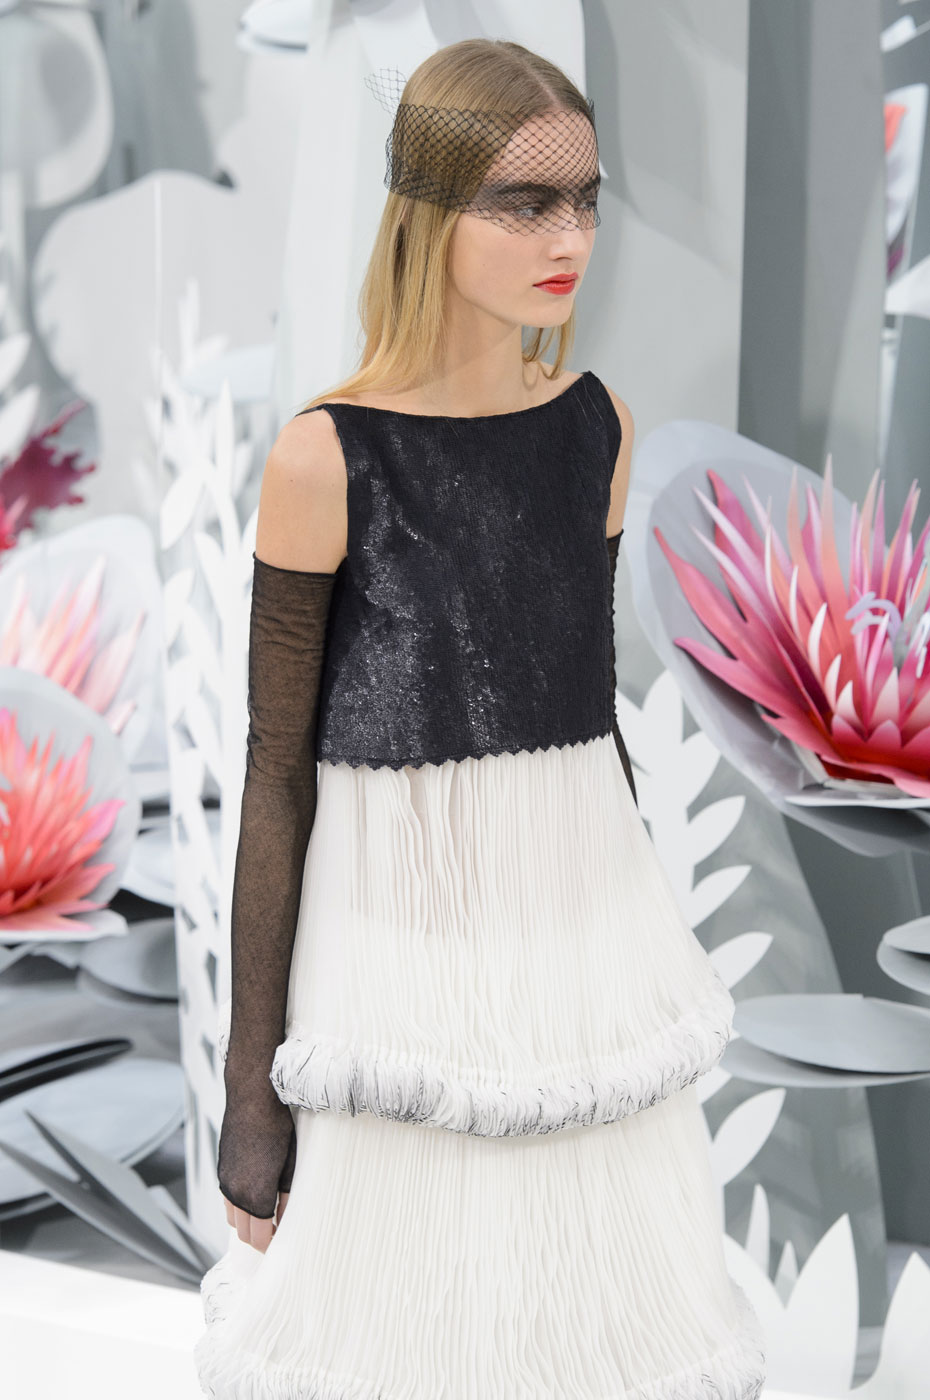 Chanel-fashion-runway-show-haute-couture-paris-spring-summer-2015-the-impression-118